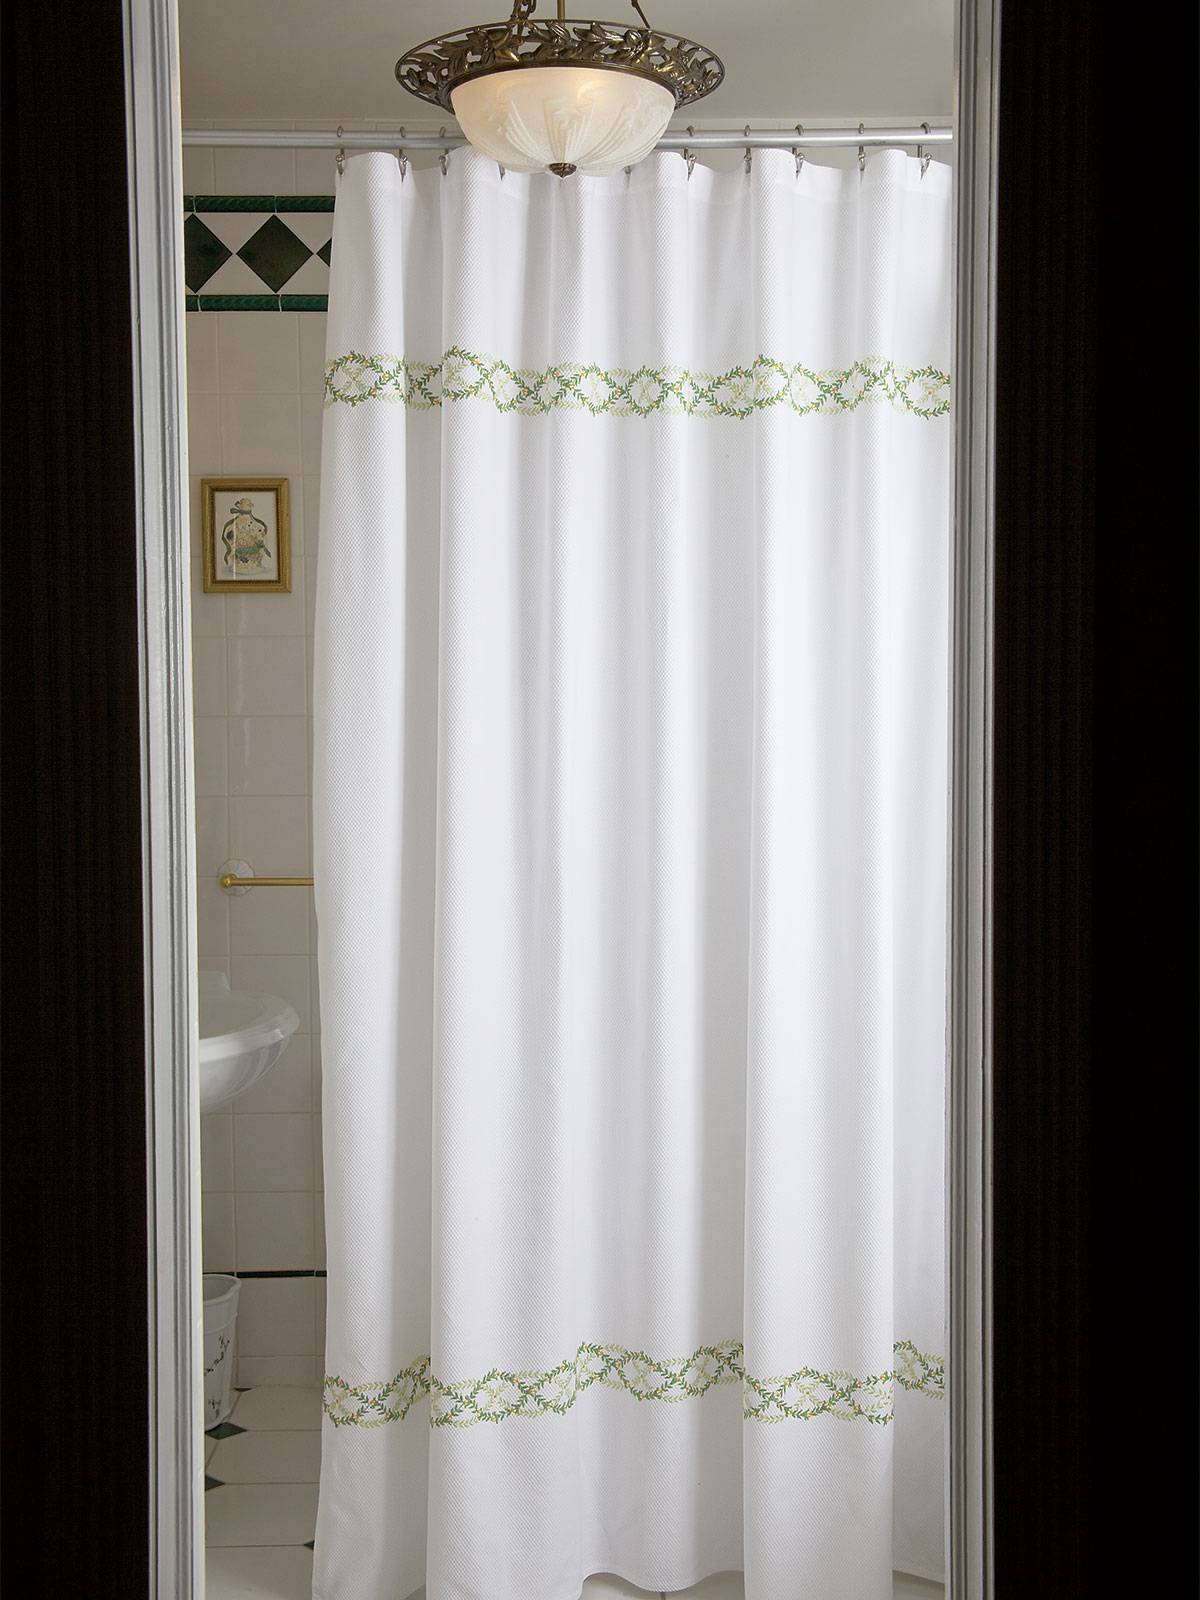 White Shower Curtain With Purple And Green Leaves Combined W pertaining to measurements 1200 X 1600